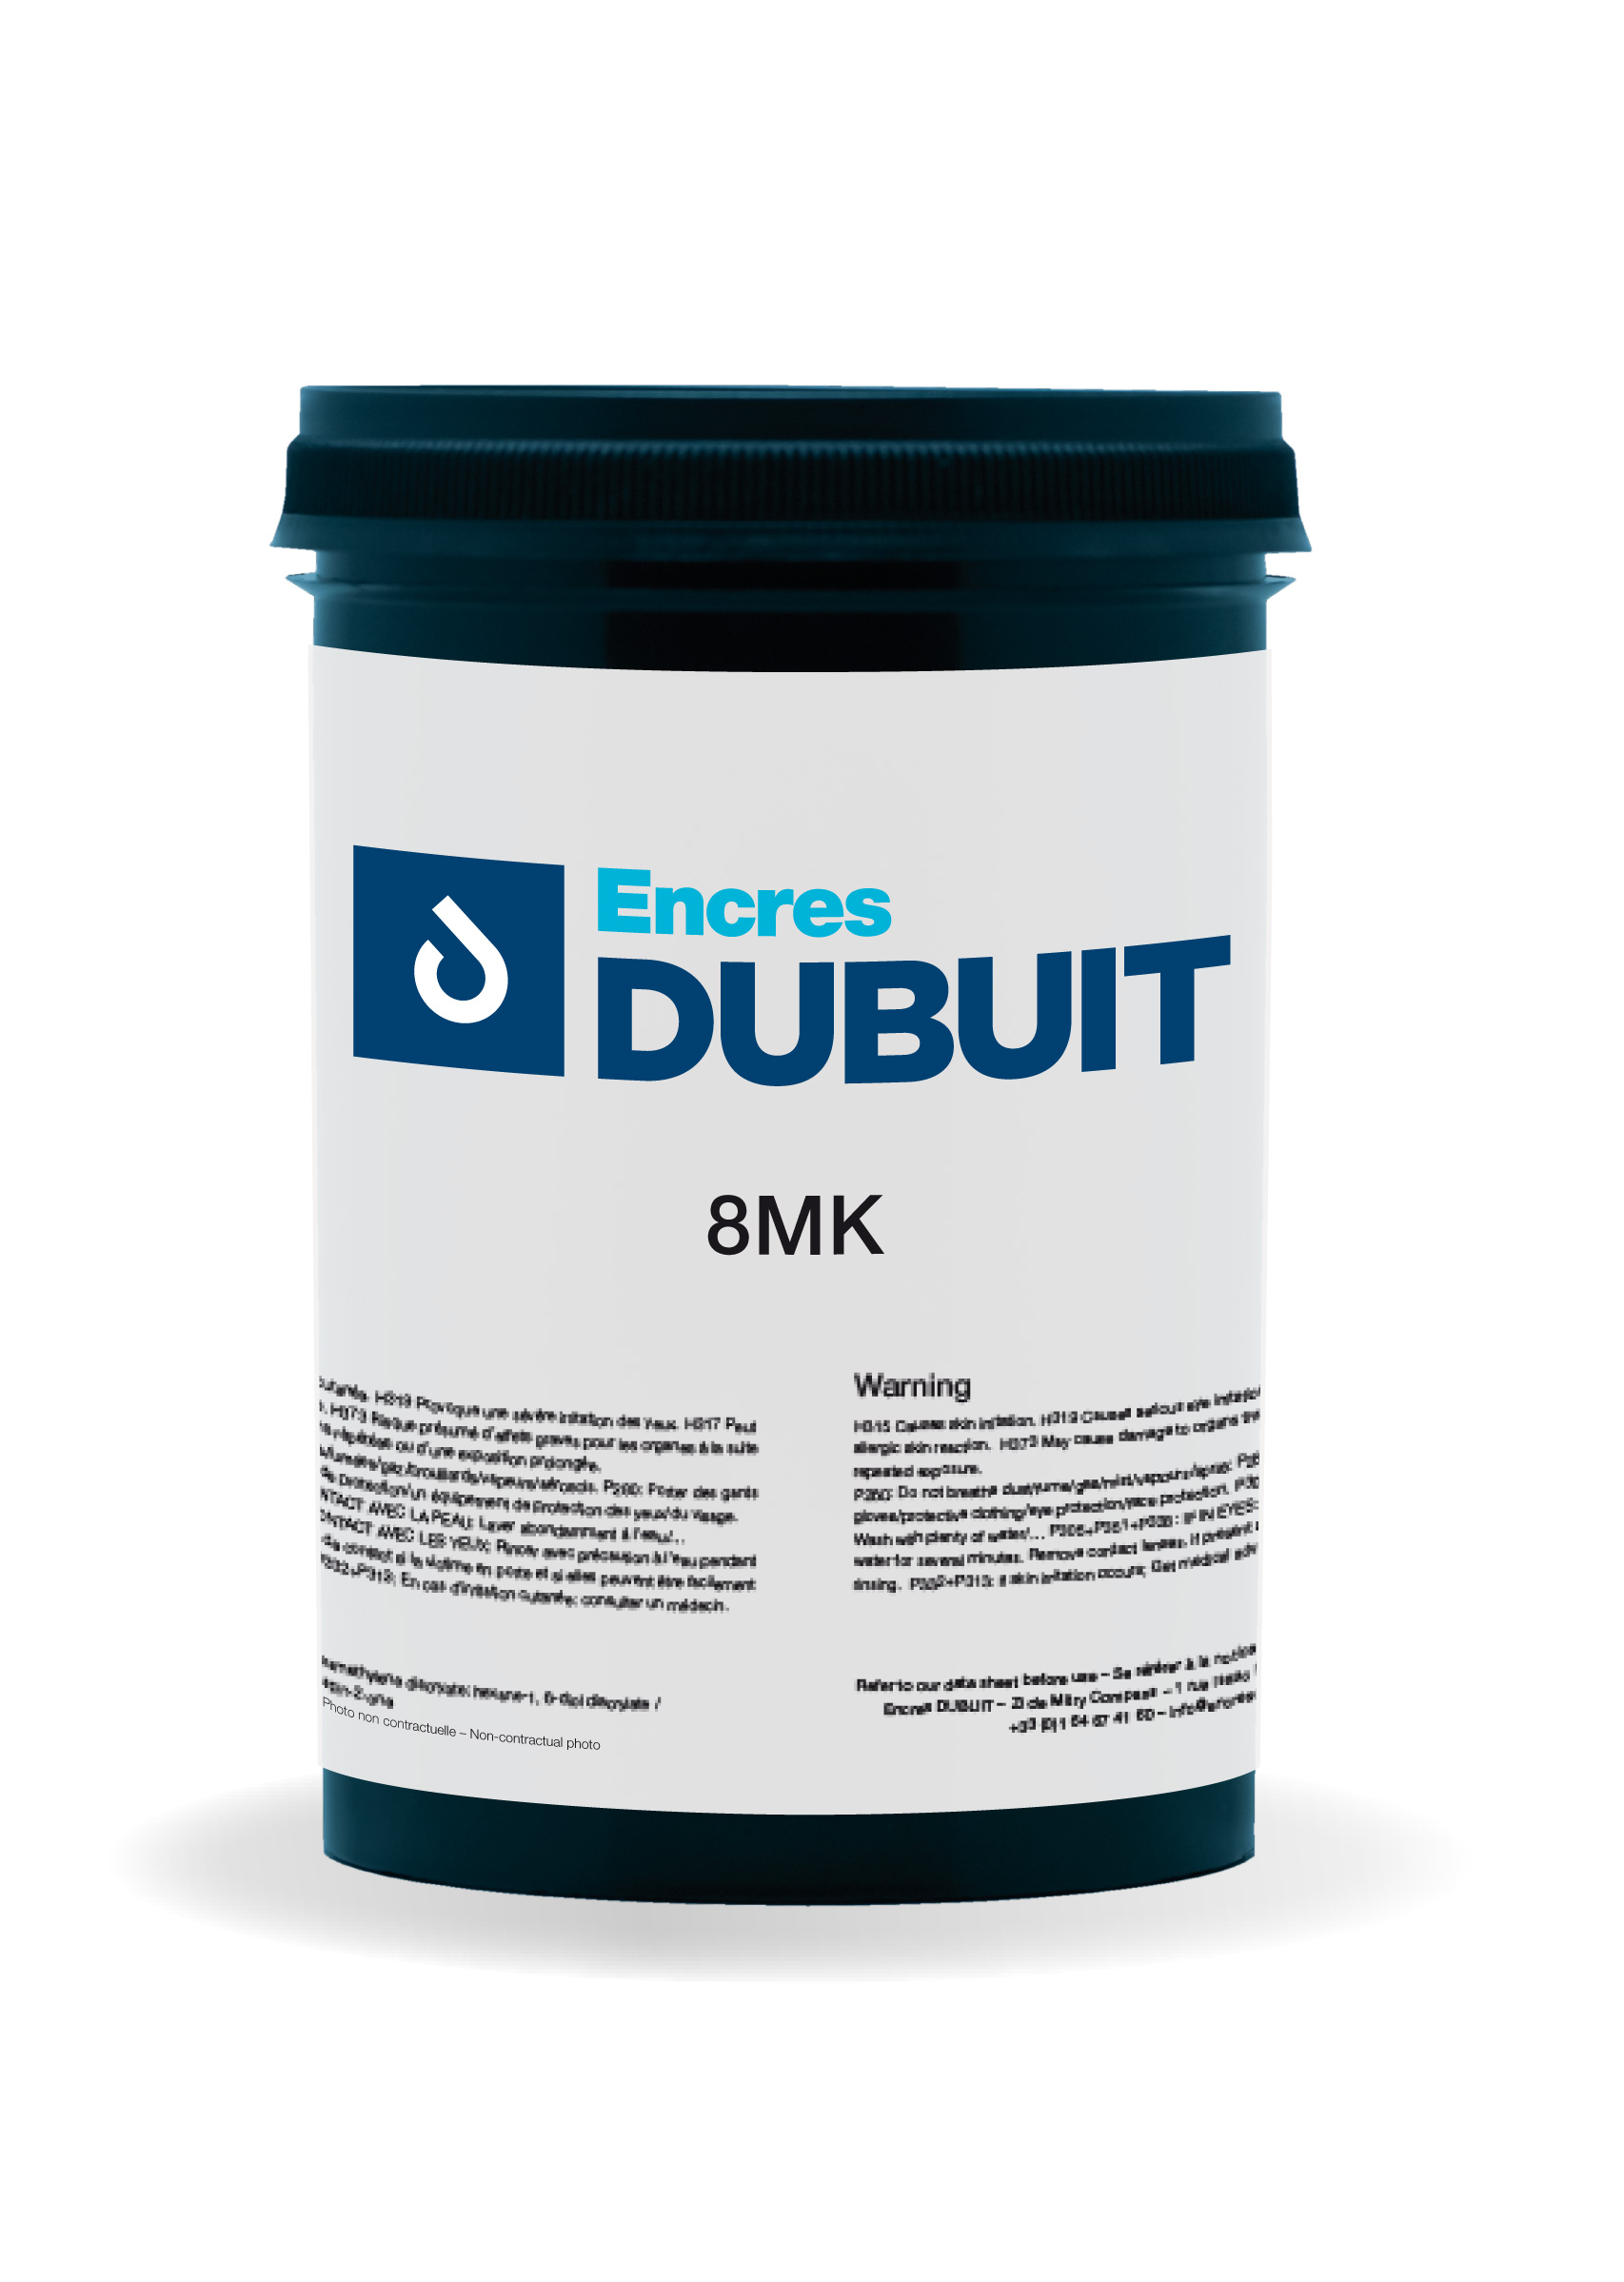 8MK-UV Screen Printing Ink - DUBUIT